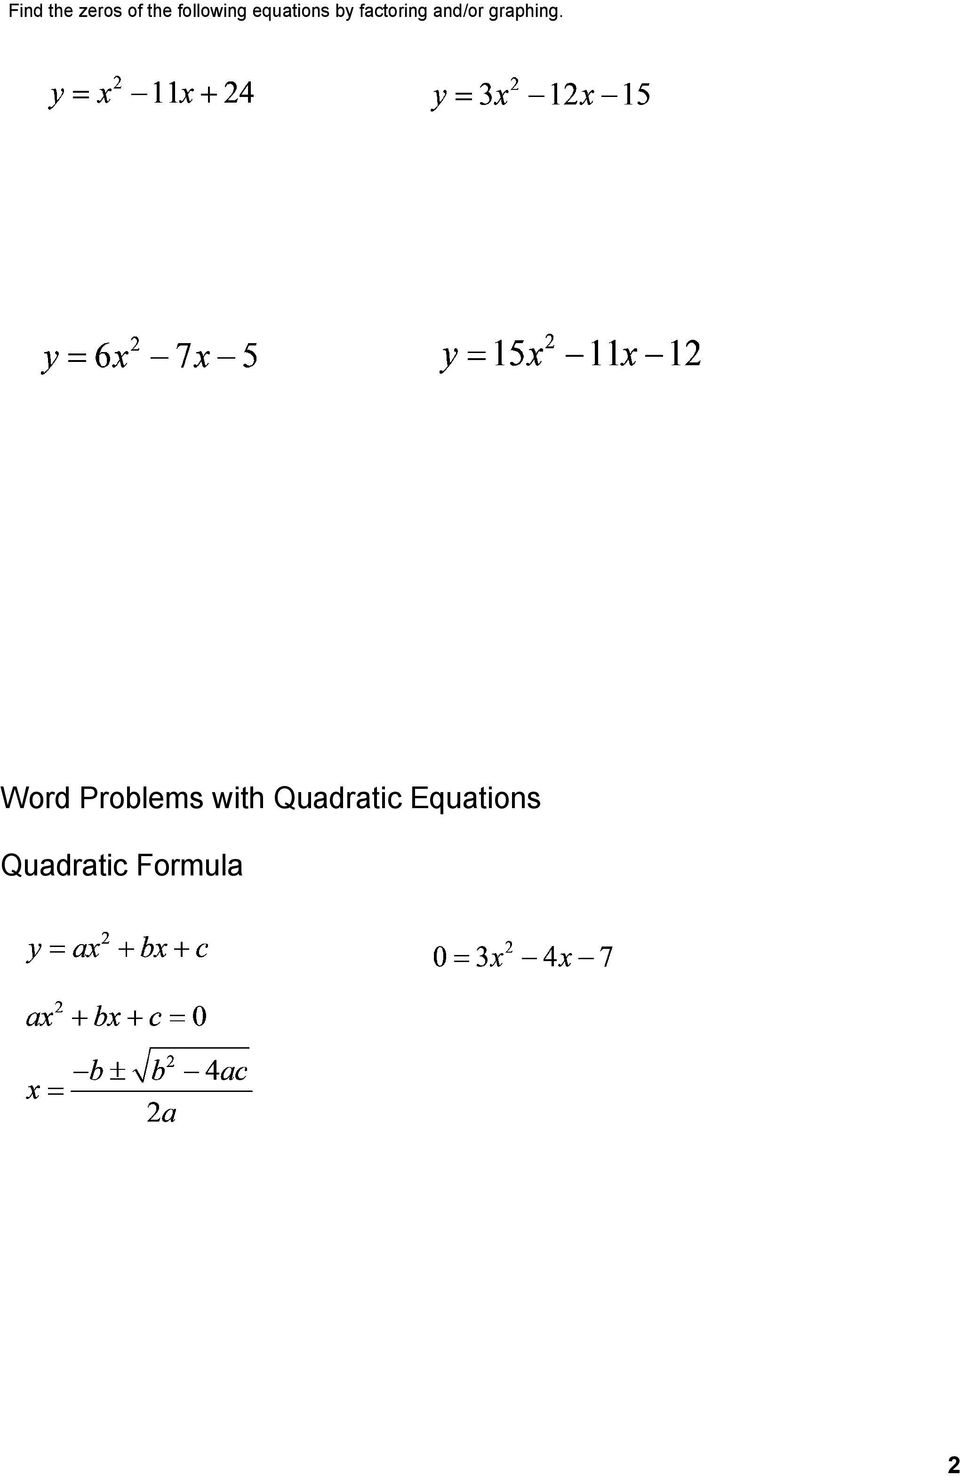 Many Word Problems Result In Quadratic Equations That Need